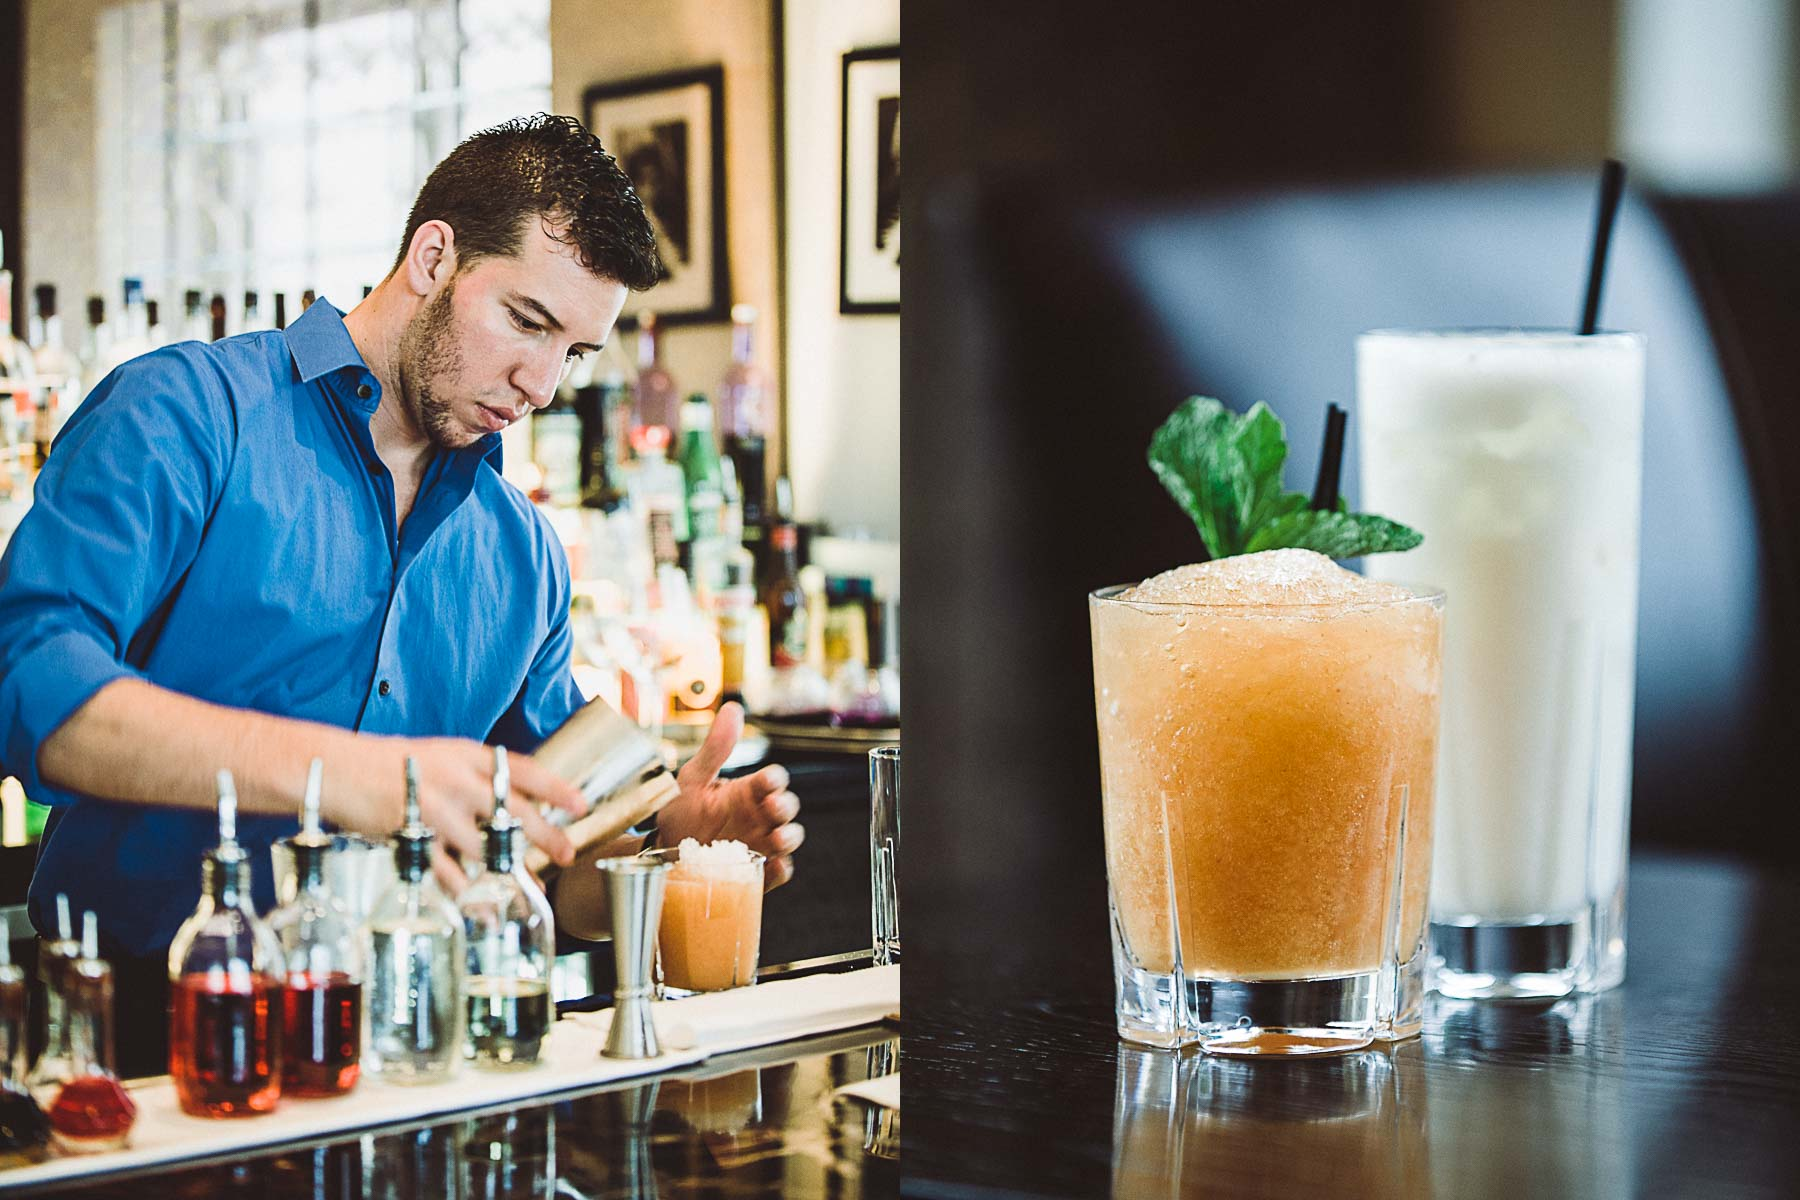 Bartender Diego Sena prepares a craft Cocktail at the Royal Blues Hotel in Deerfield Beach, Florida.